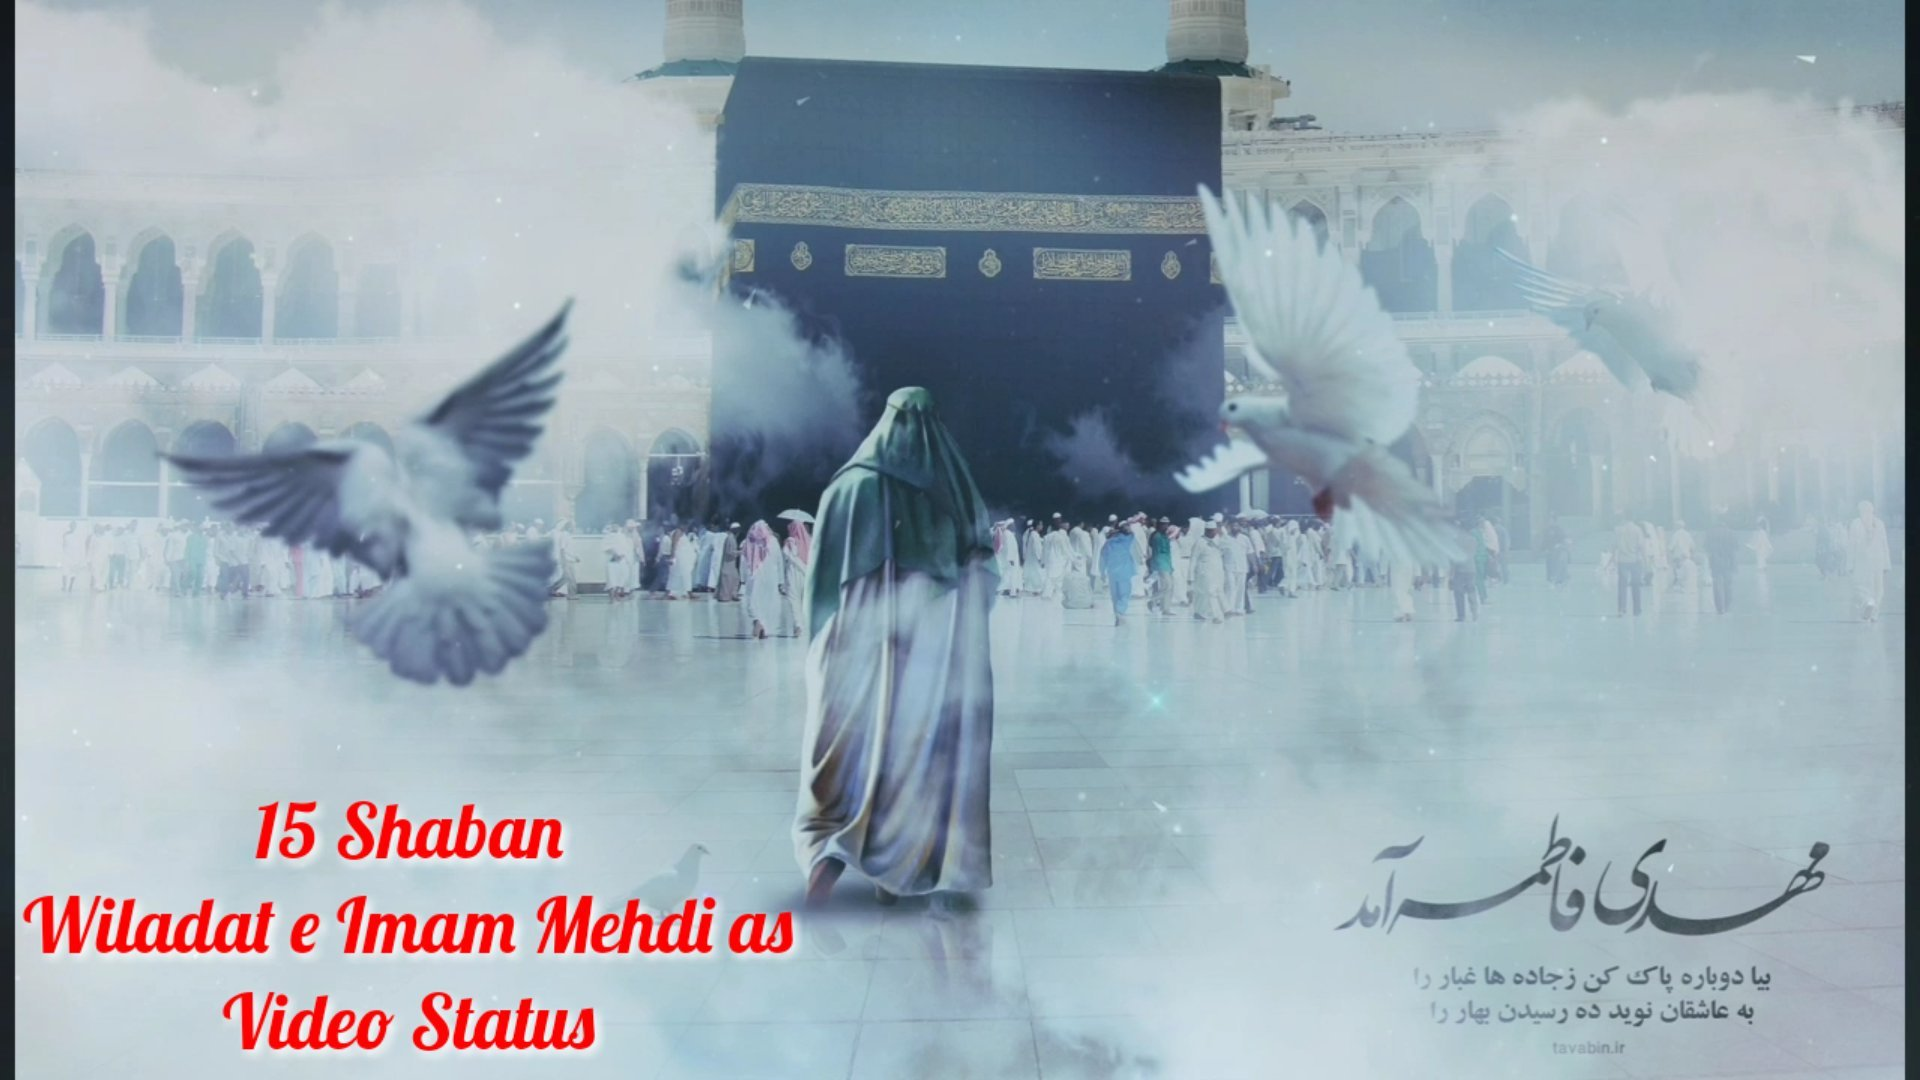 15 Shaban Wiladat e Imam Mehdi as Whats App Video Status